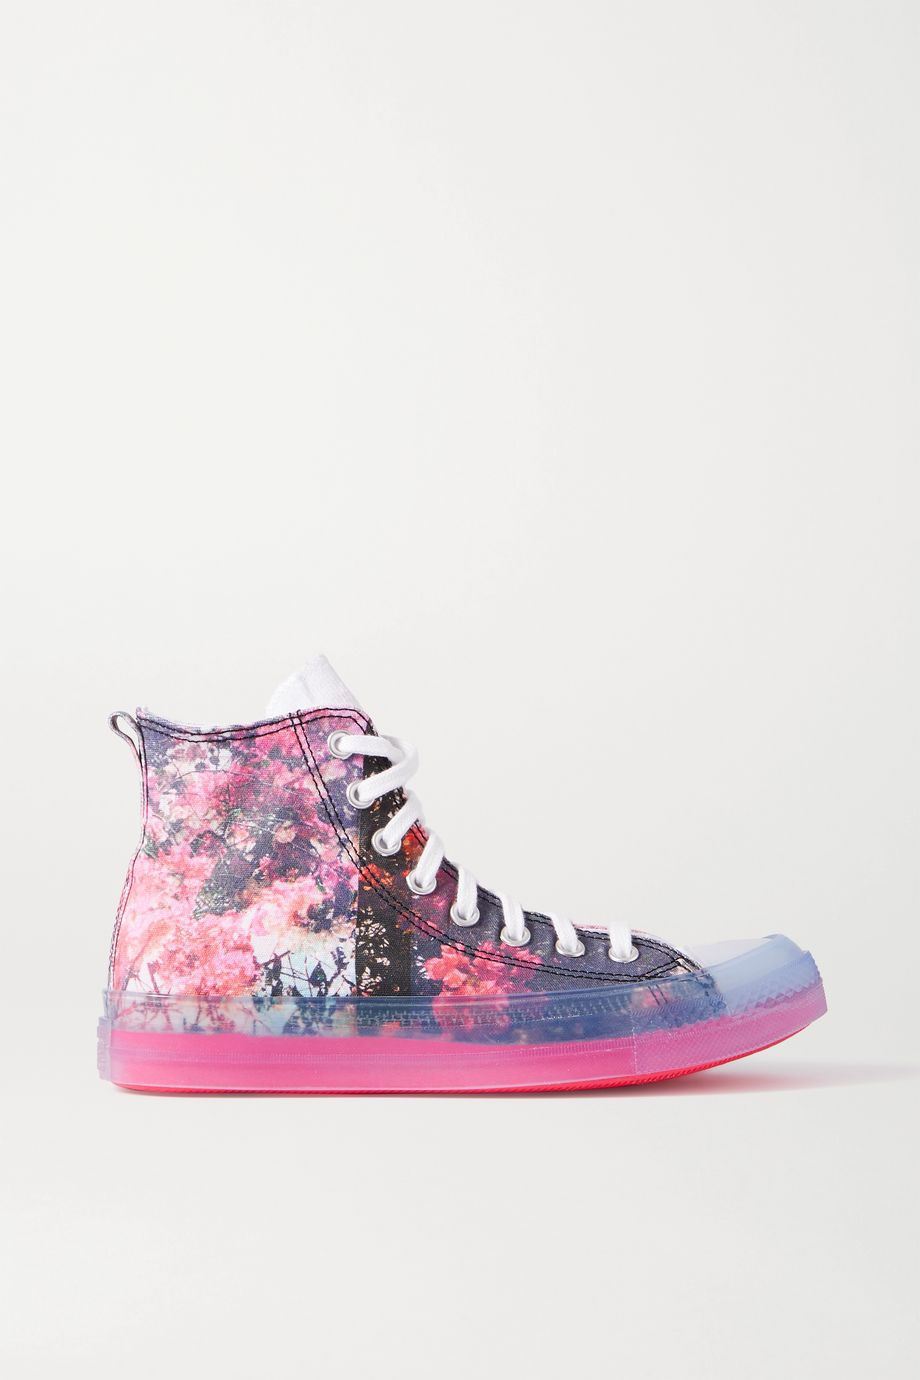 Converse + Shaniqwa Jarvis Chuck Taylor CX printed canvas high-top sneakers